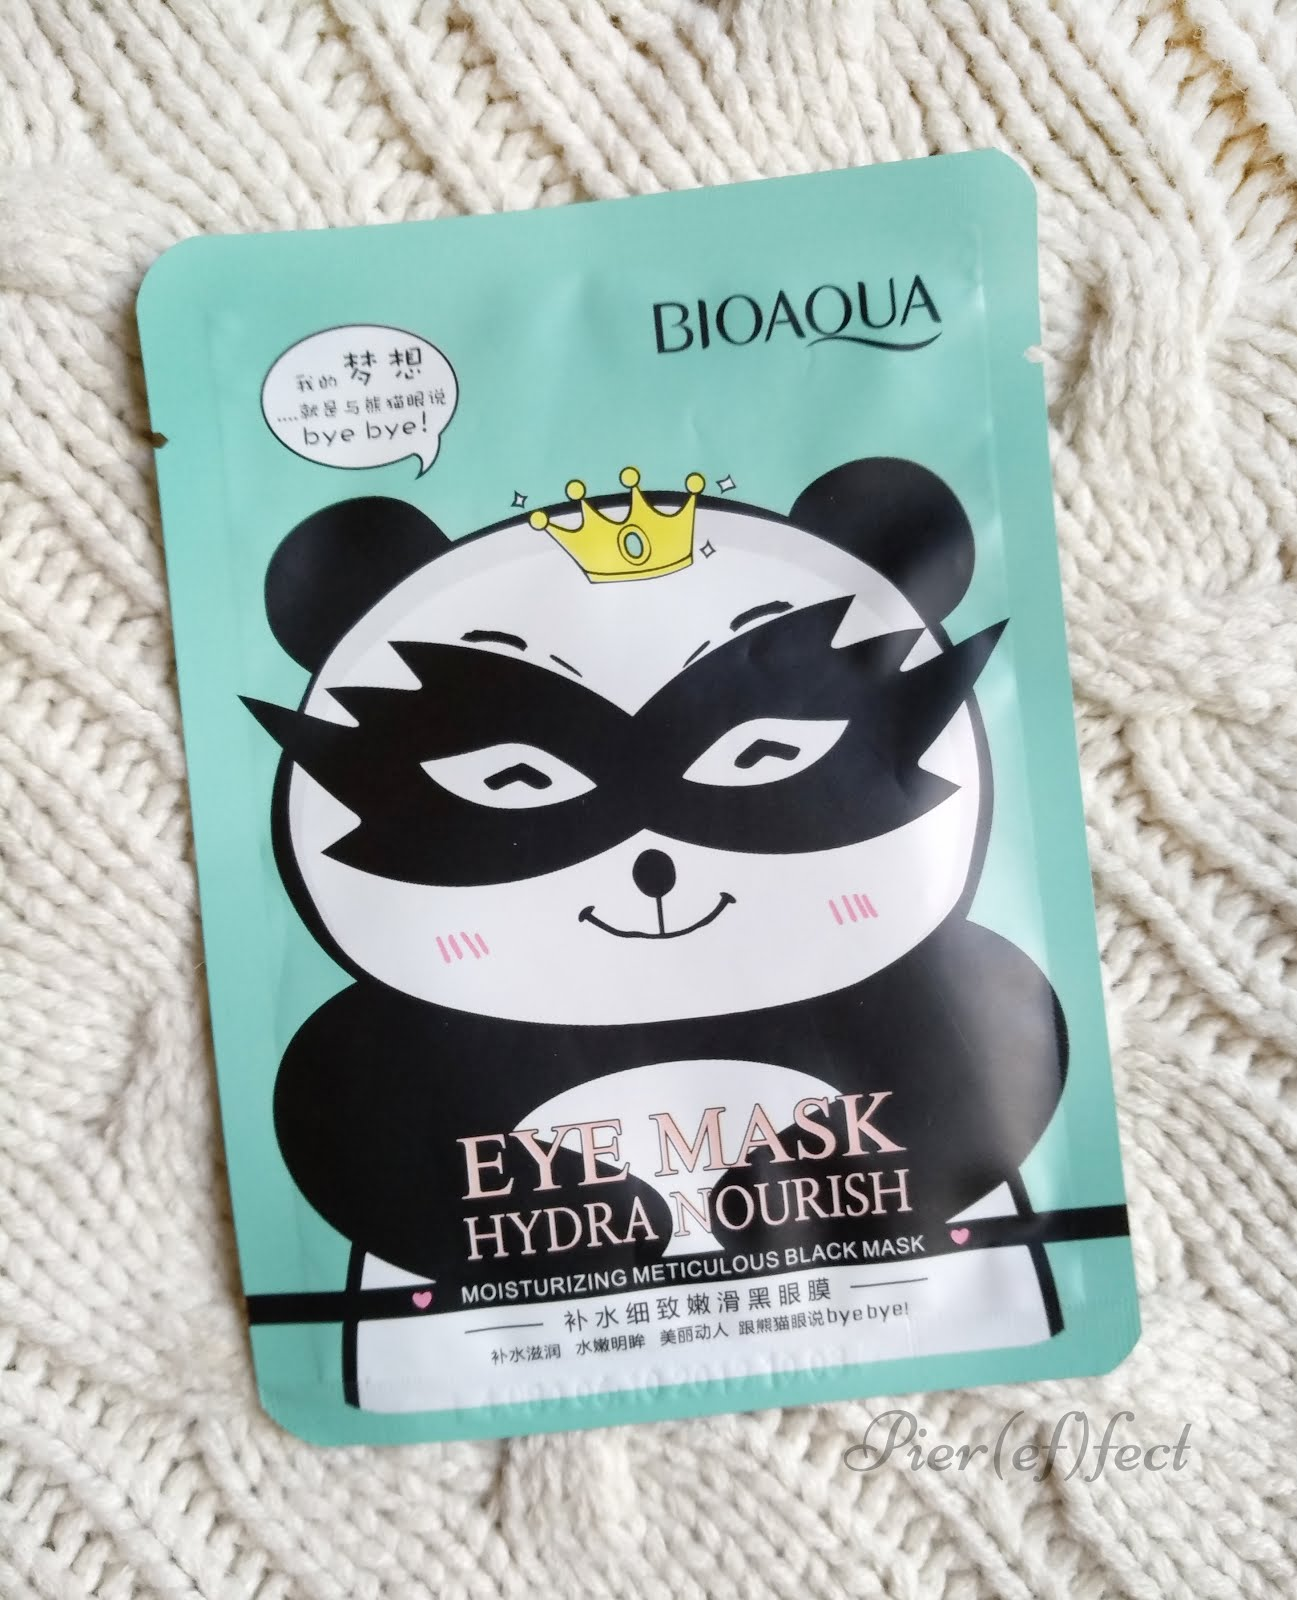 aliexpress sheet mask bioaqua